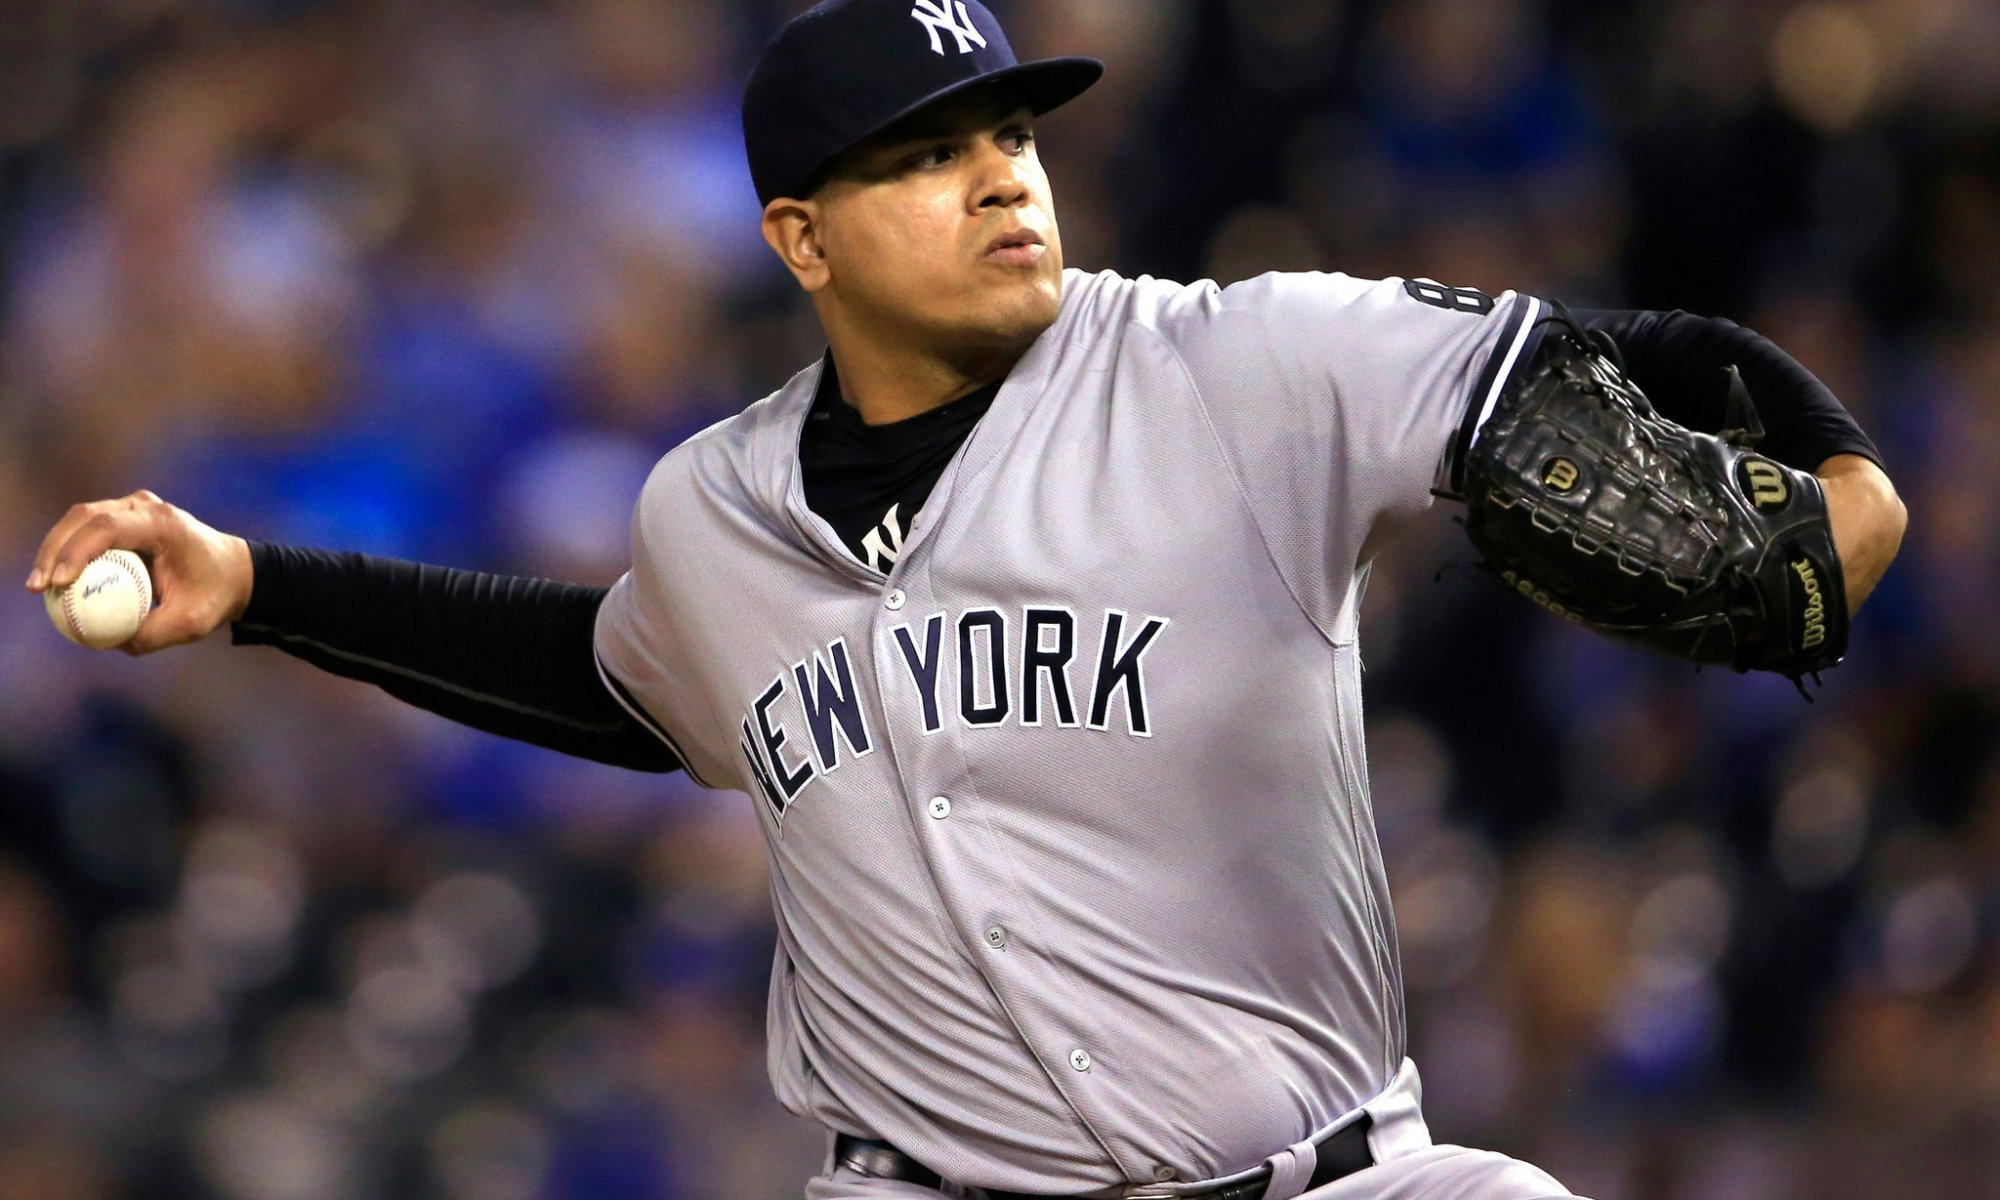 After an injury plagued 2019, should the Yankees re-sign Dellin Betances this offseason?